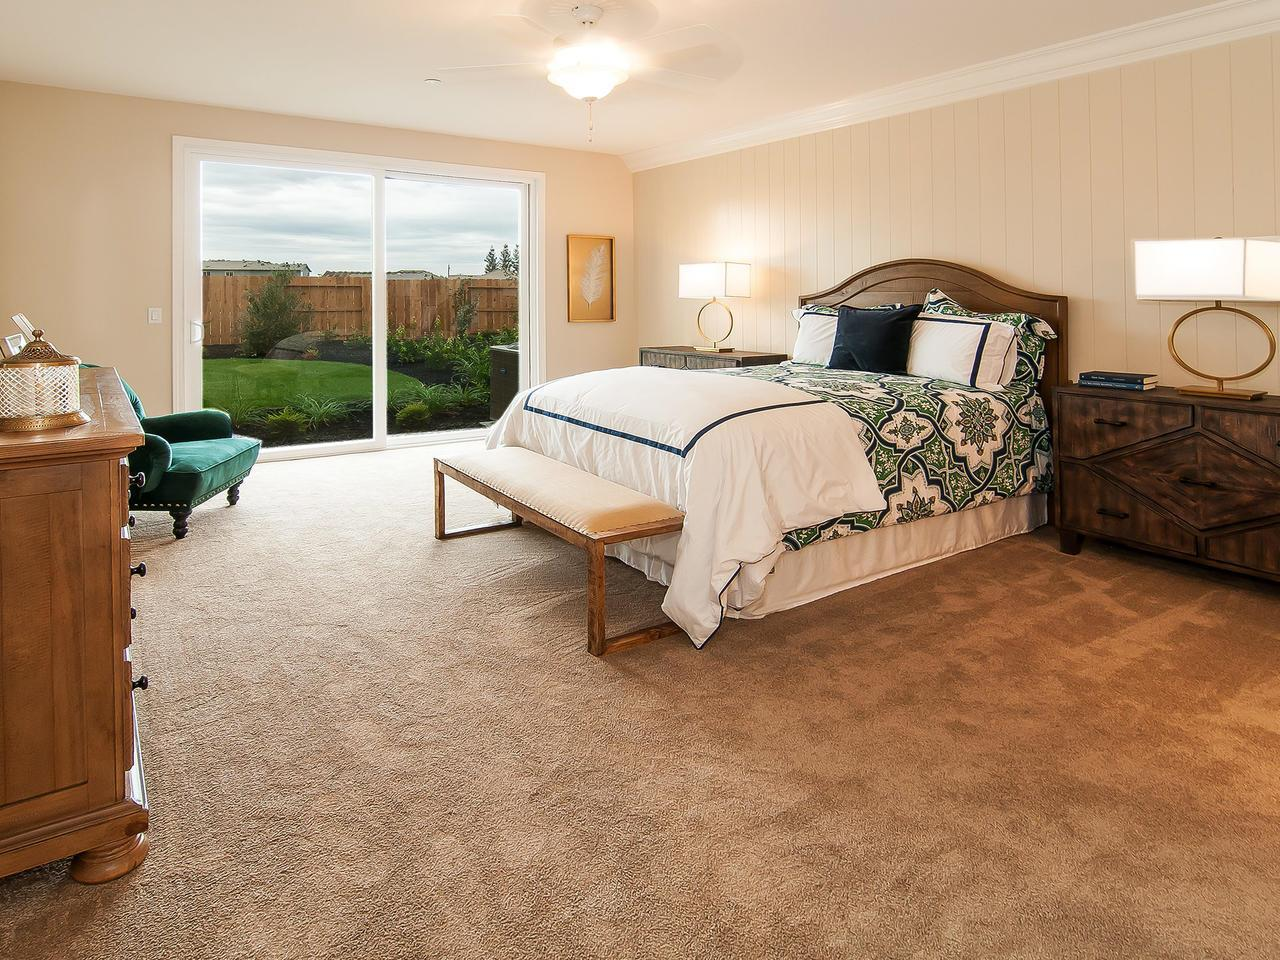 Bedroom featured in the Residence 2041 By Legacy Homes in Merced, CA